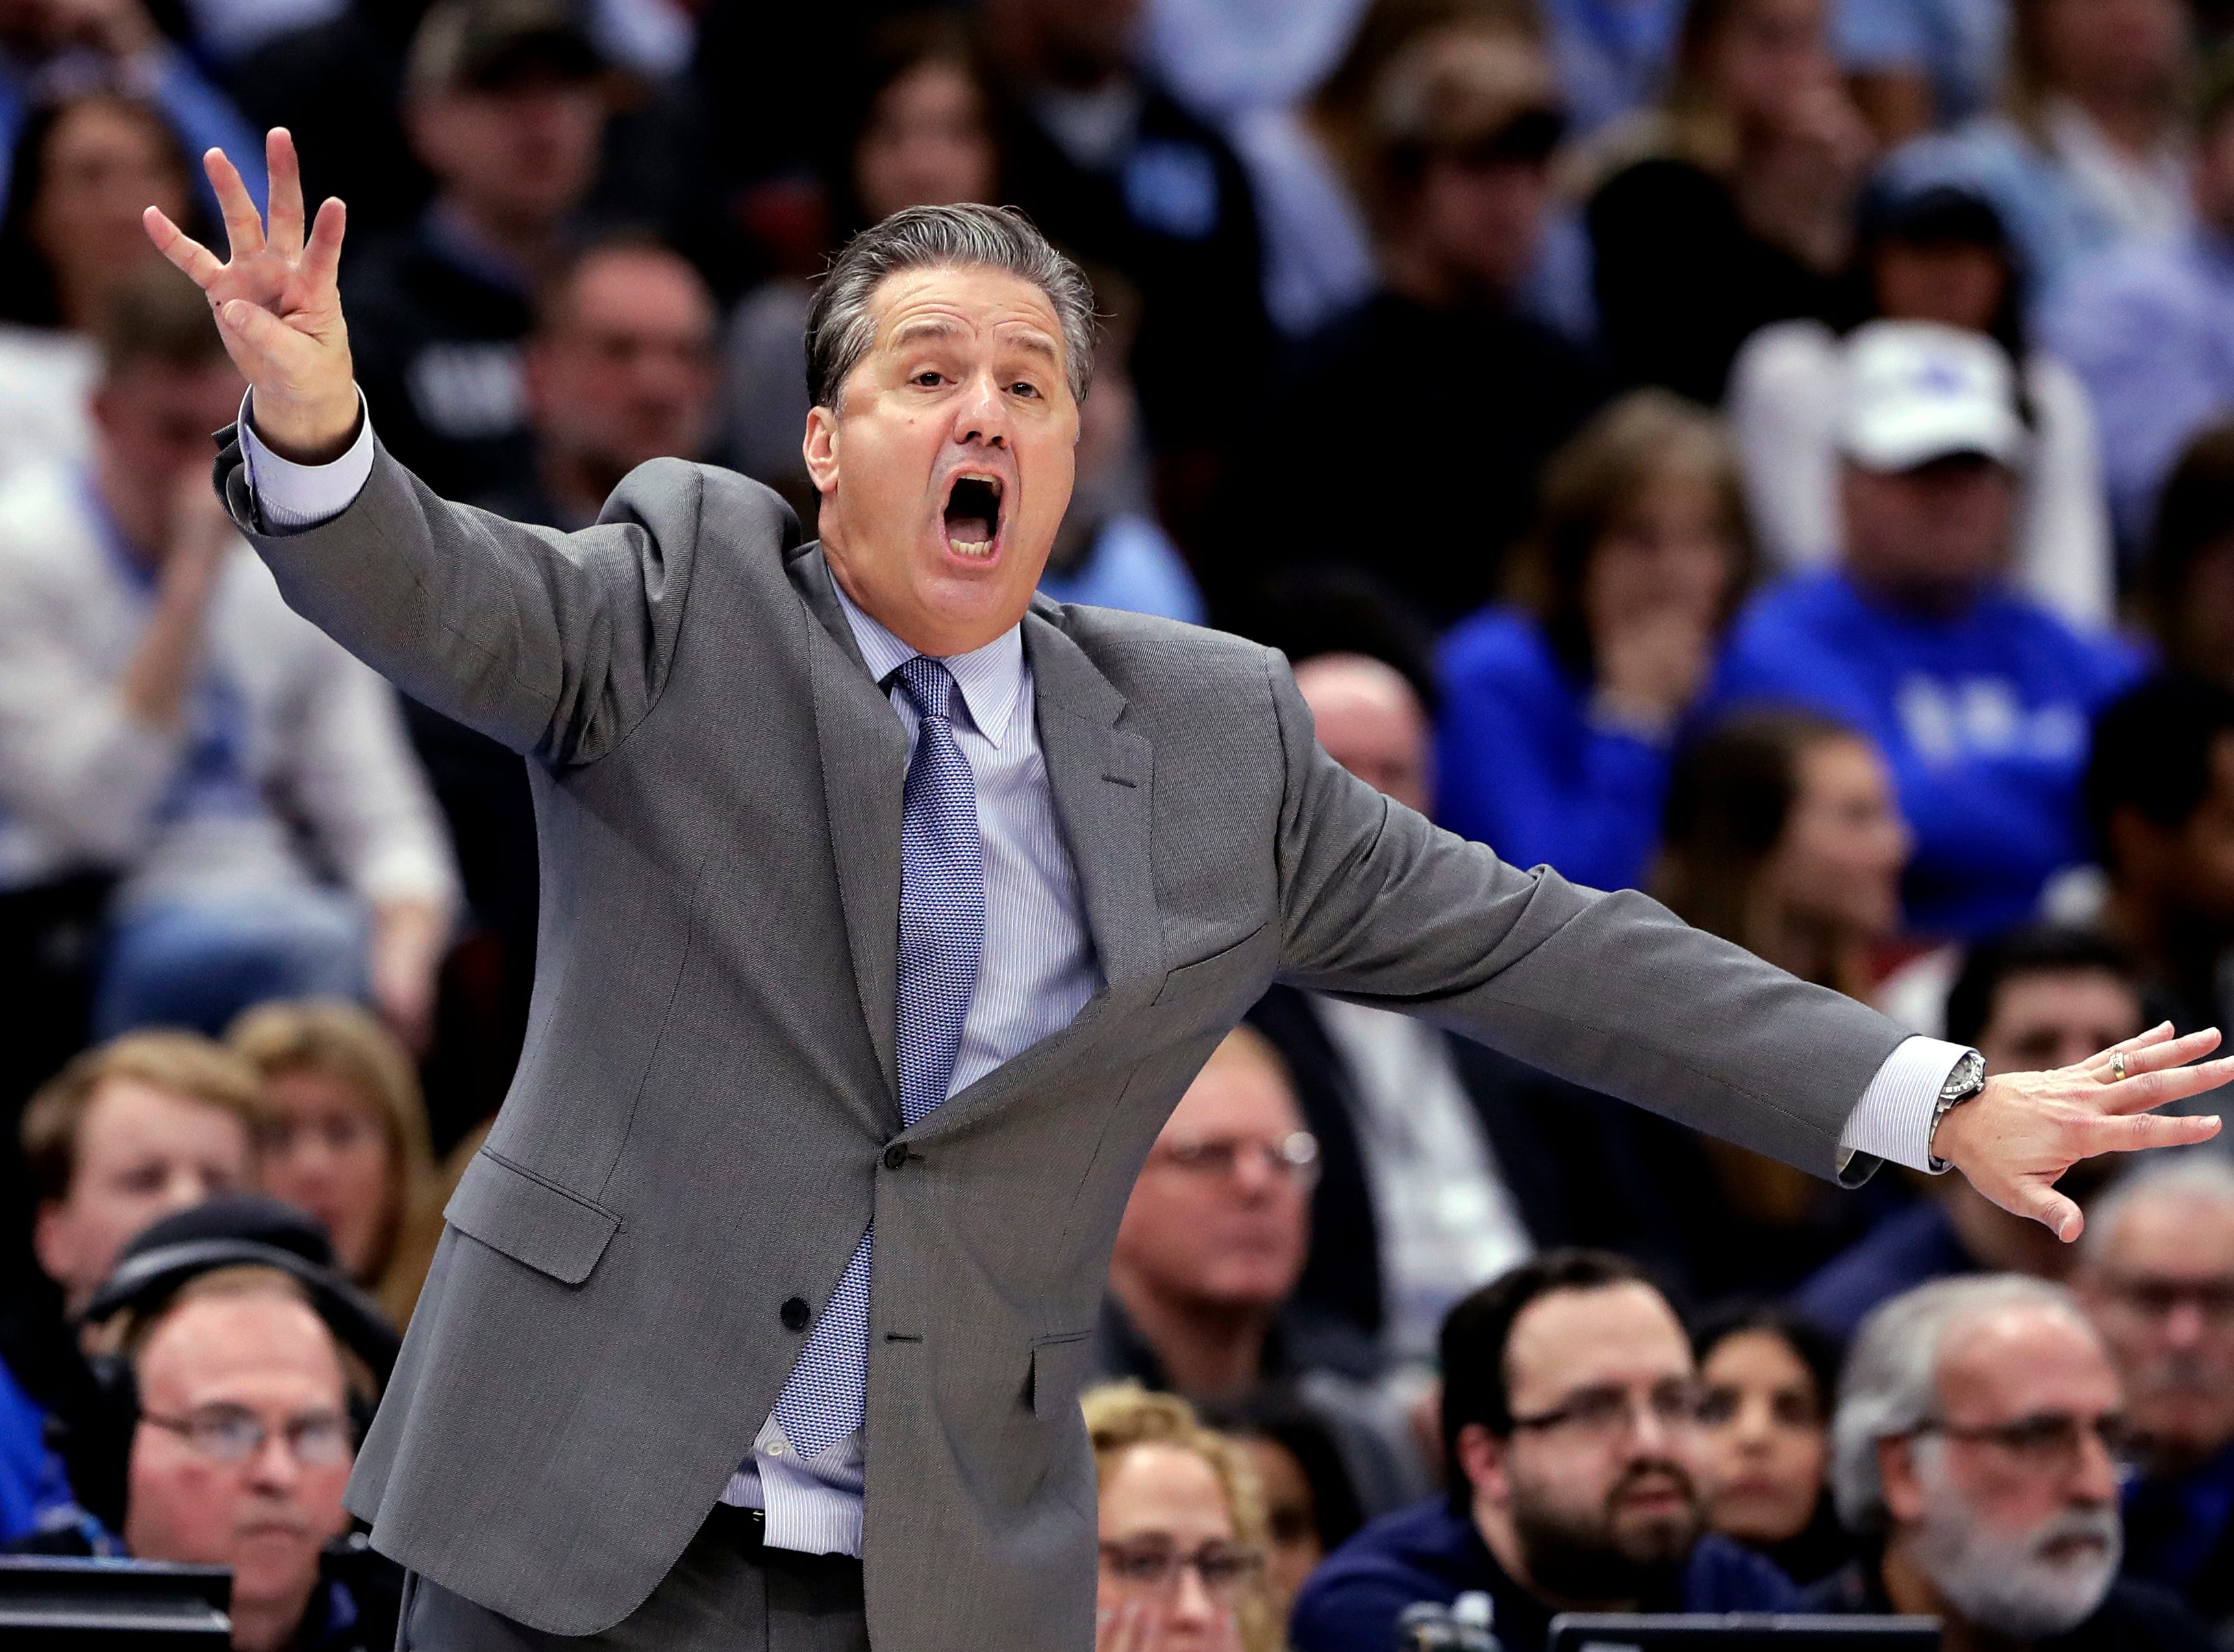 Kentucky head coach John Calipari directs his team against North Carolina during the second half of an NCAA college basketball game in the fifth annual CBS Sports Classic, Saturday, Dec. 22, 2018, in Chicago. Kentucky won 80-72.